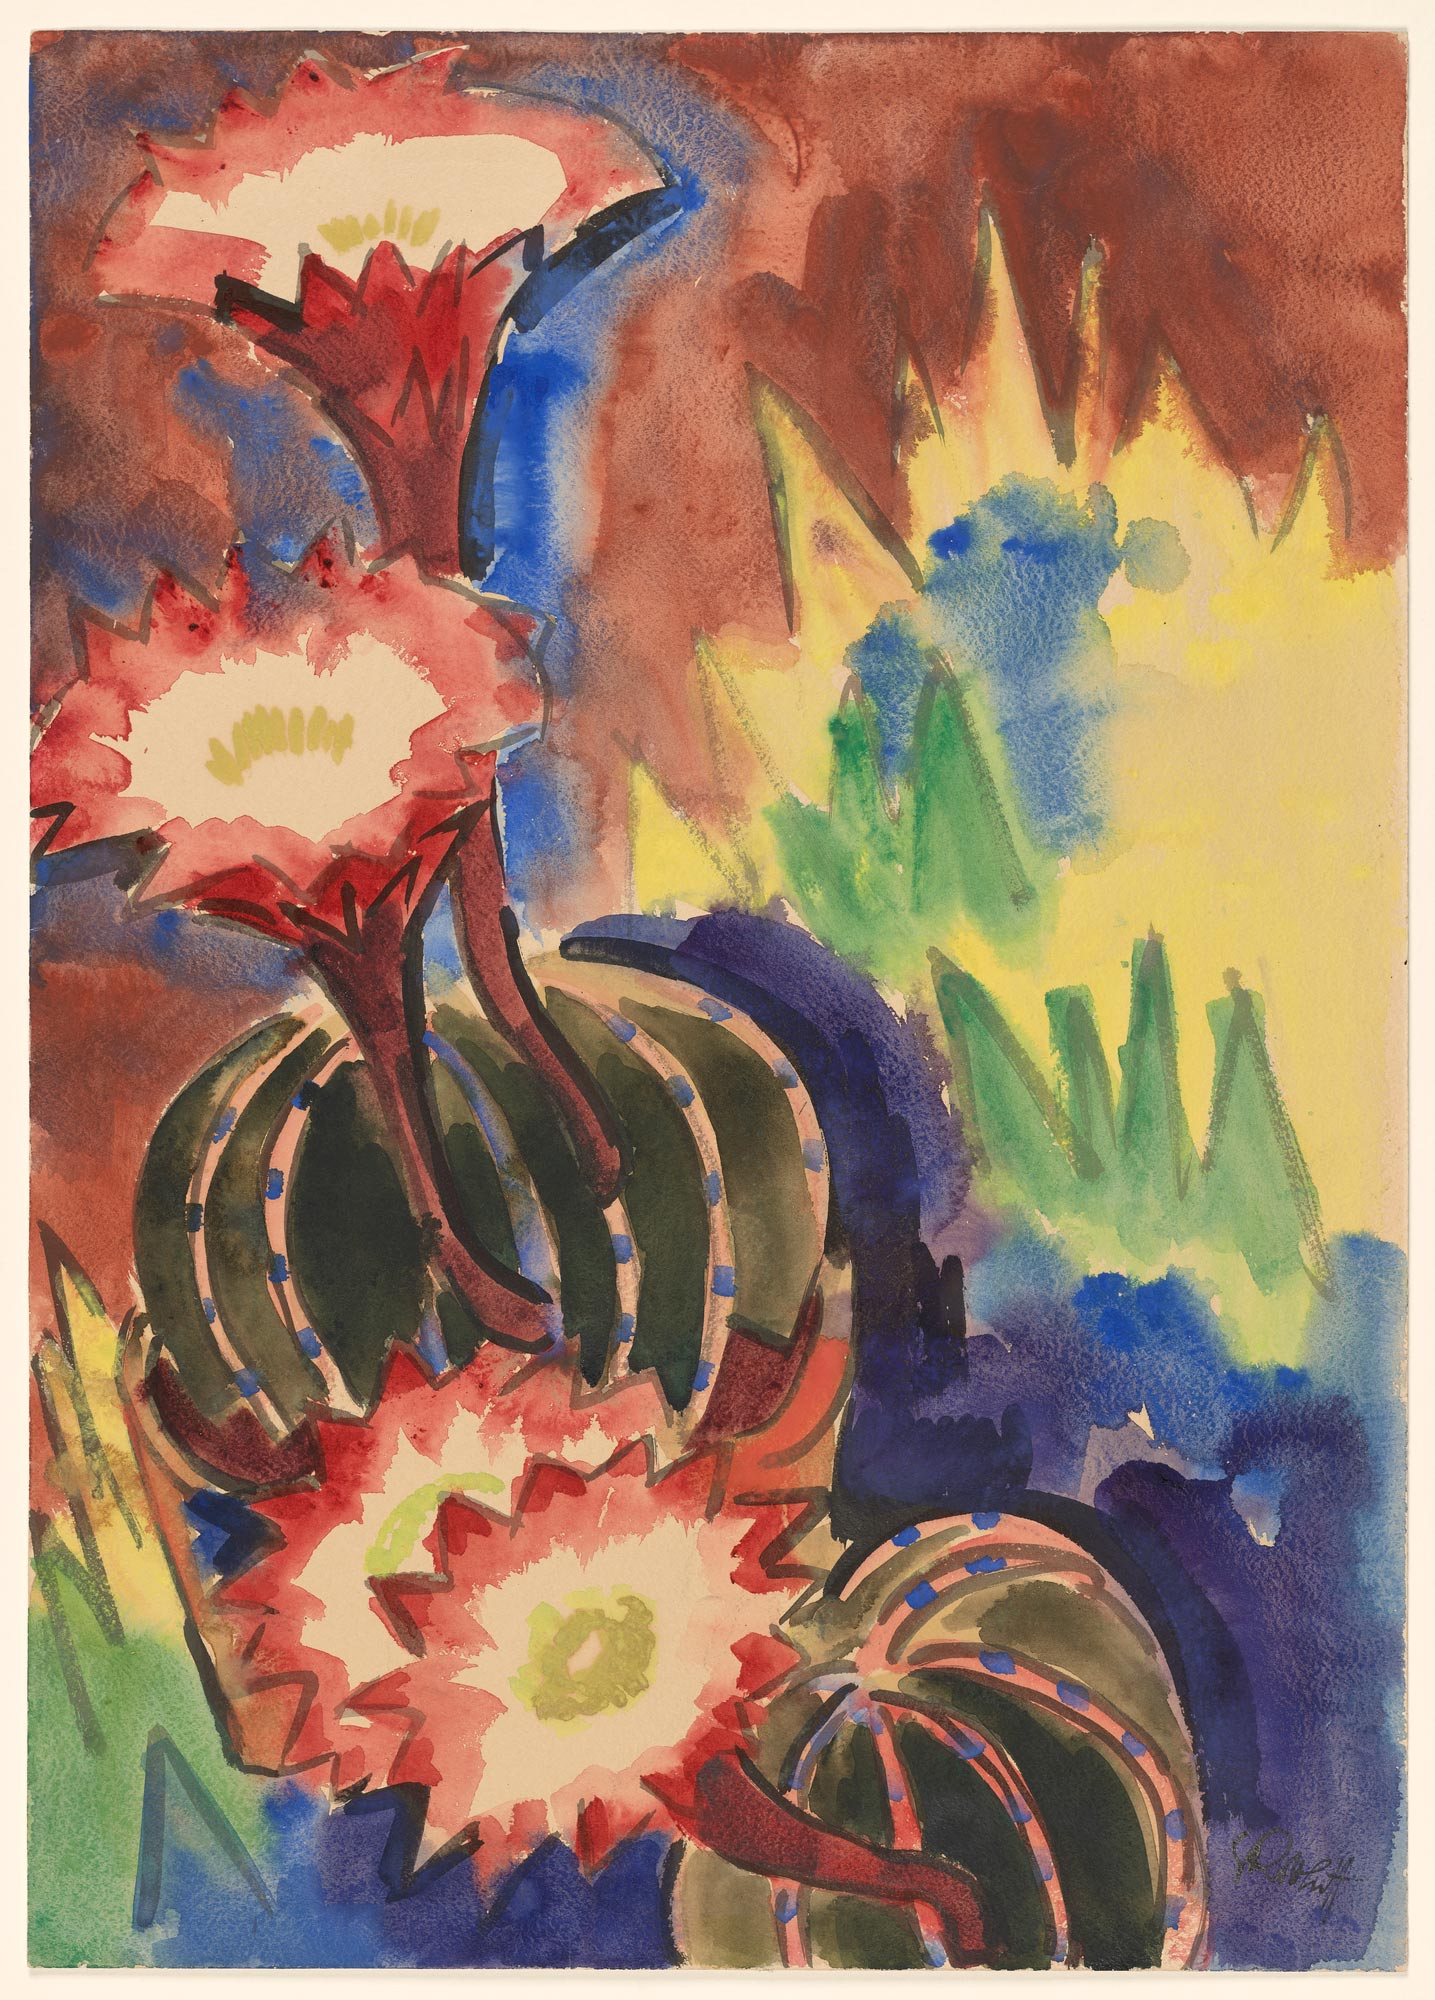 Brilliant red blooms rise up out of two round cactuses against a reddish and yellow background.